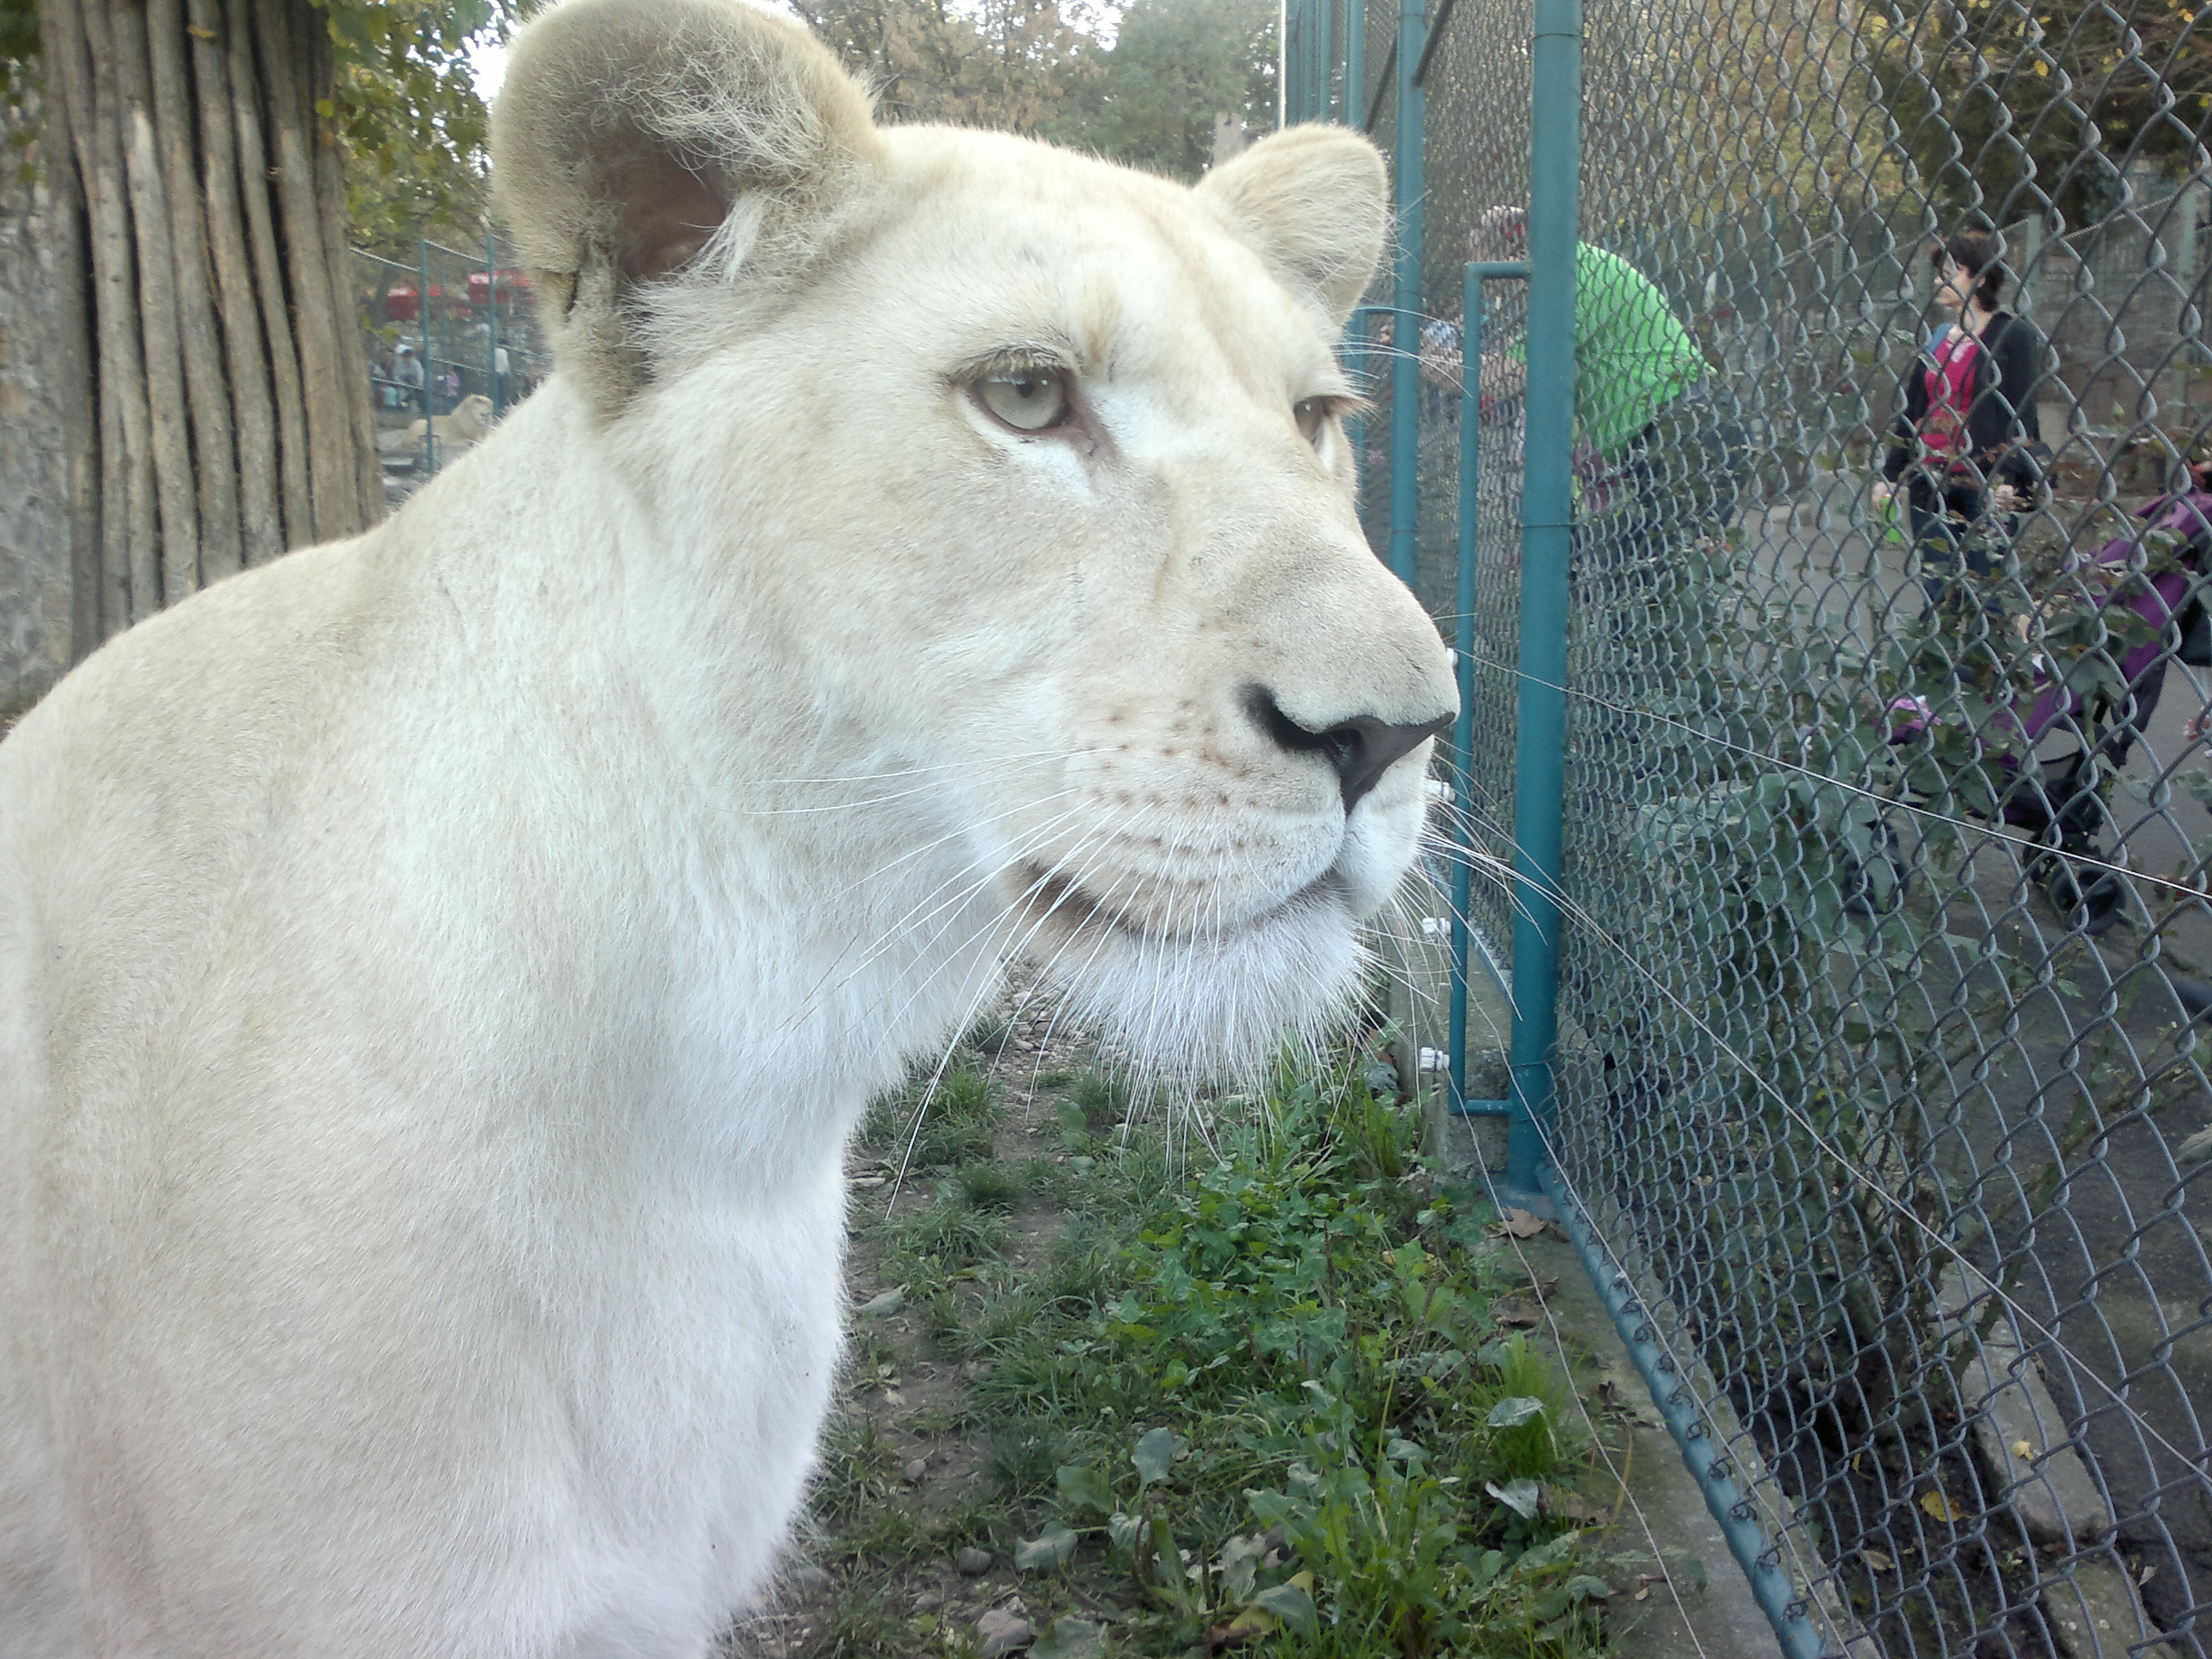 File:White lioness - inside the cage view.jpg - Wikimedia Commons